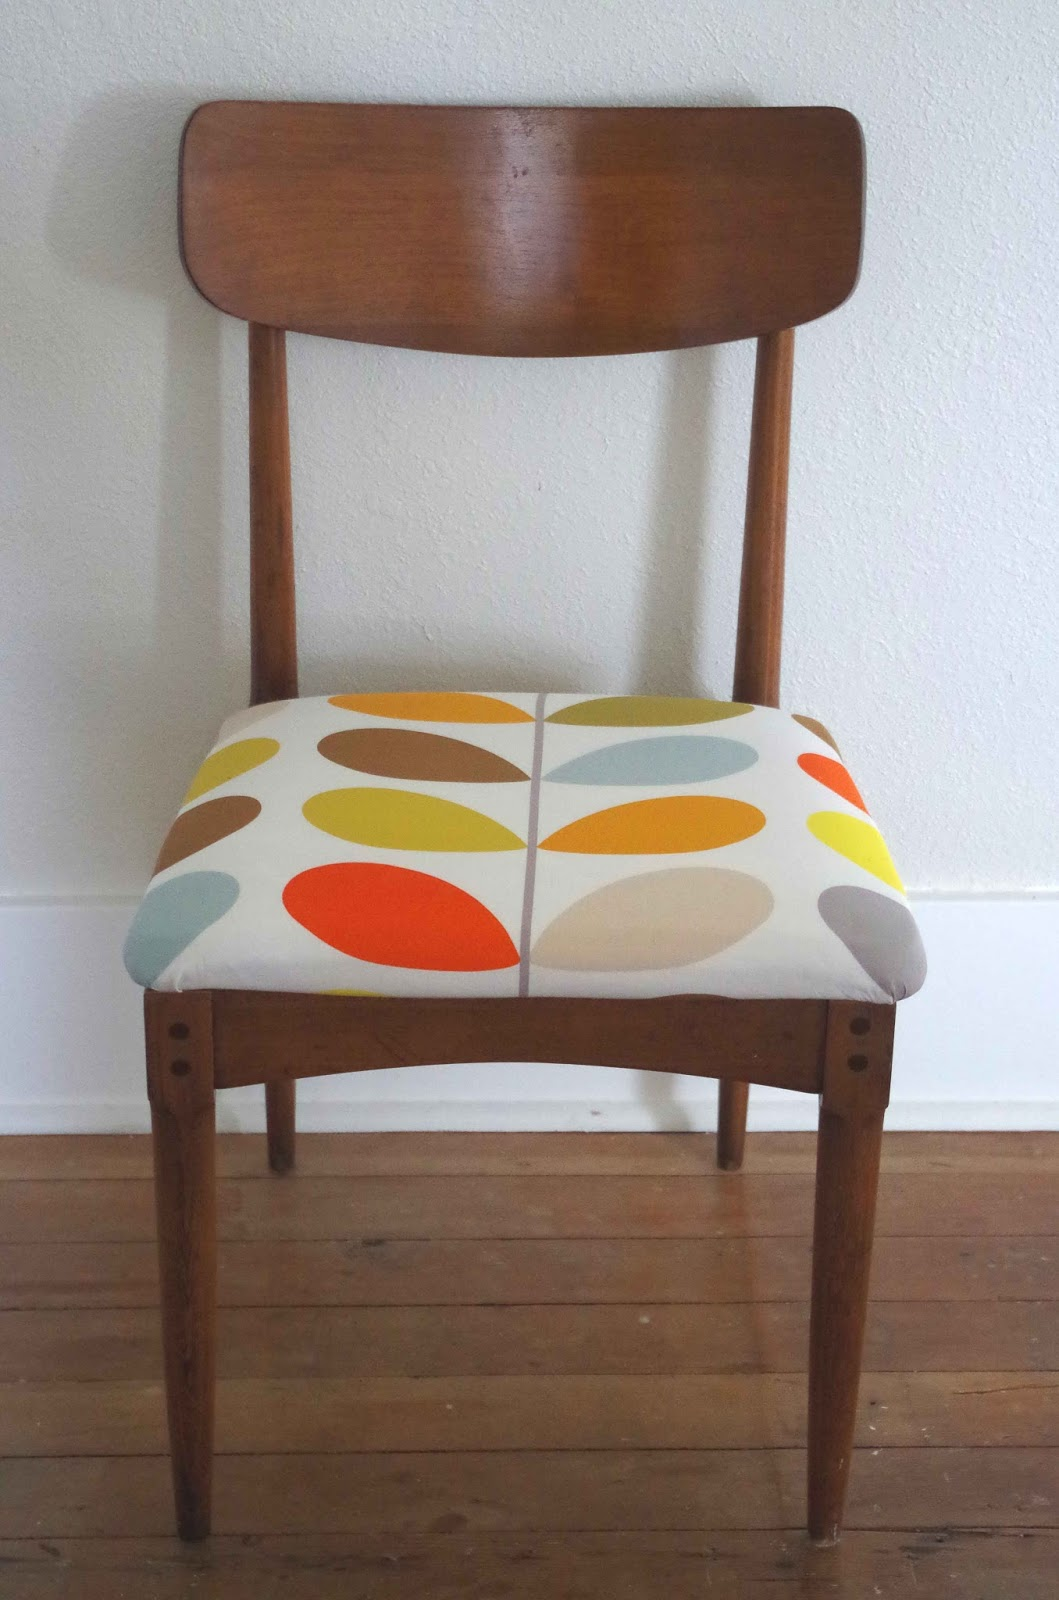 Great Patina After Being Re Stained, Very Uneven Finish Adds A Good  Texture. The Chair Has No Marking And Has Been Covered In Orla Kiely Fabric  From The UK.